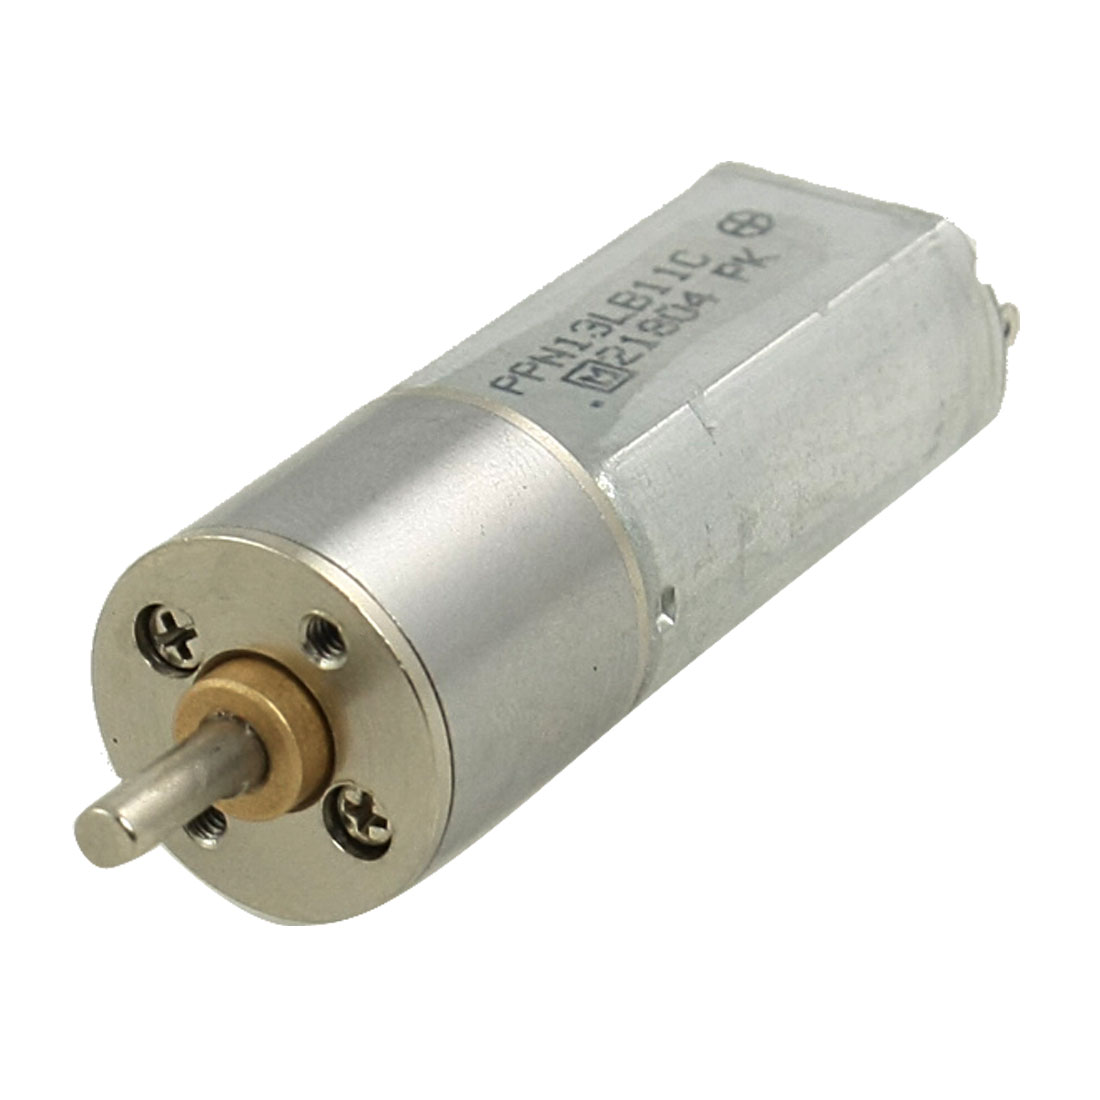 200RPM 12V 0.5A High Torque Mini Electric DC Geared Motor 16mm